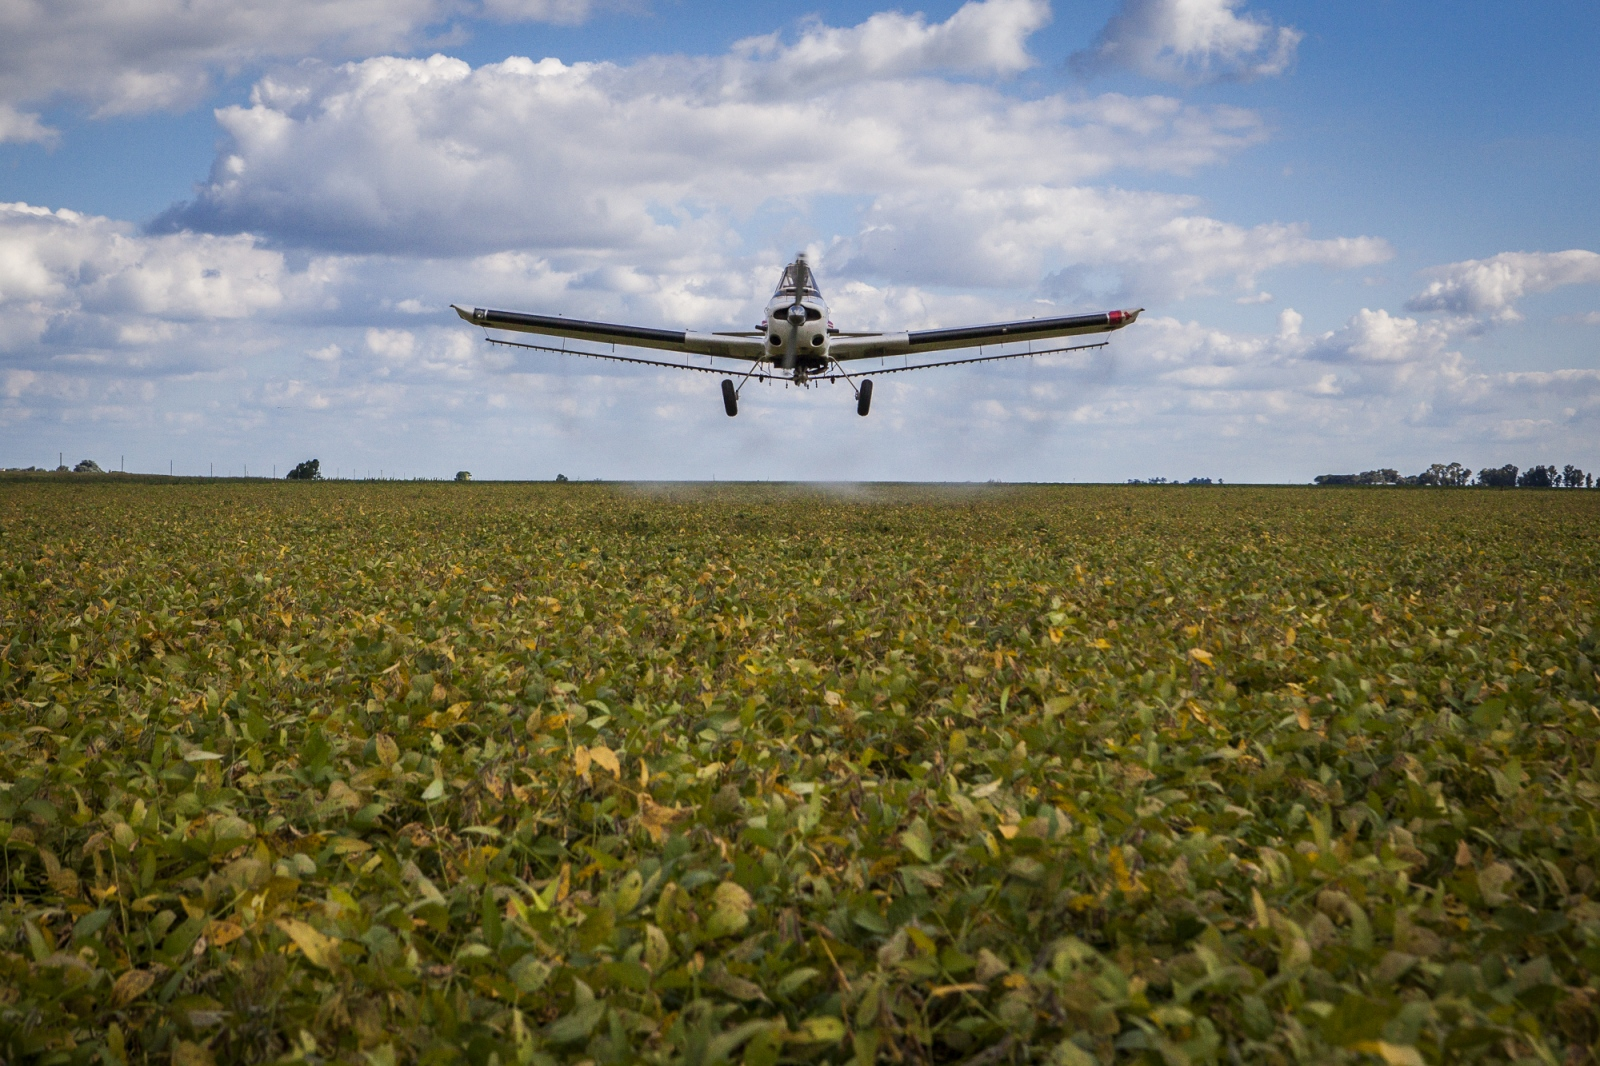 A plane fumigates a soy field close by the town of Monte Maiz. Residents claim that the aerial pulverizations are one of the many causes for the cases of cancer grow exponentially in the area since the introduction of glyphosate on the soya cultivation. 26,000,000 litres of pesticides are sprayed in Argentina - which per hectare is ten times more than in the USA.